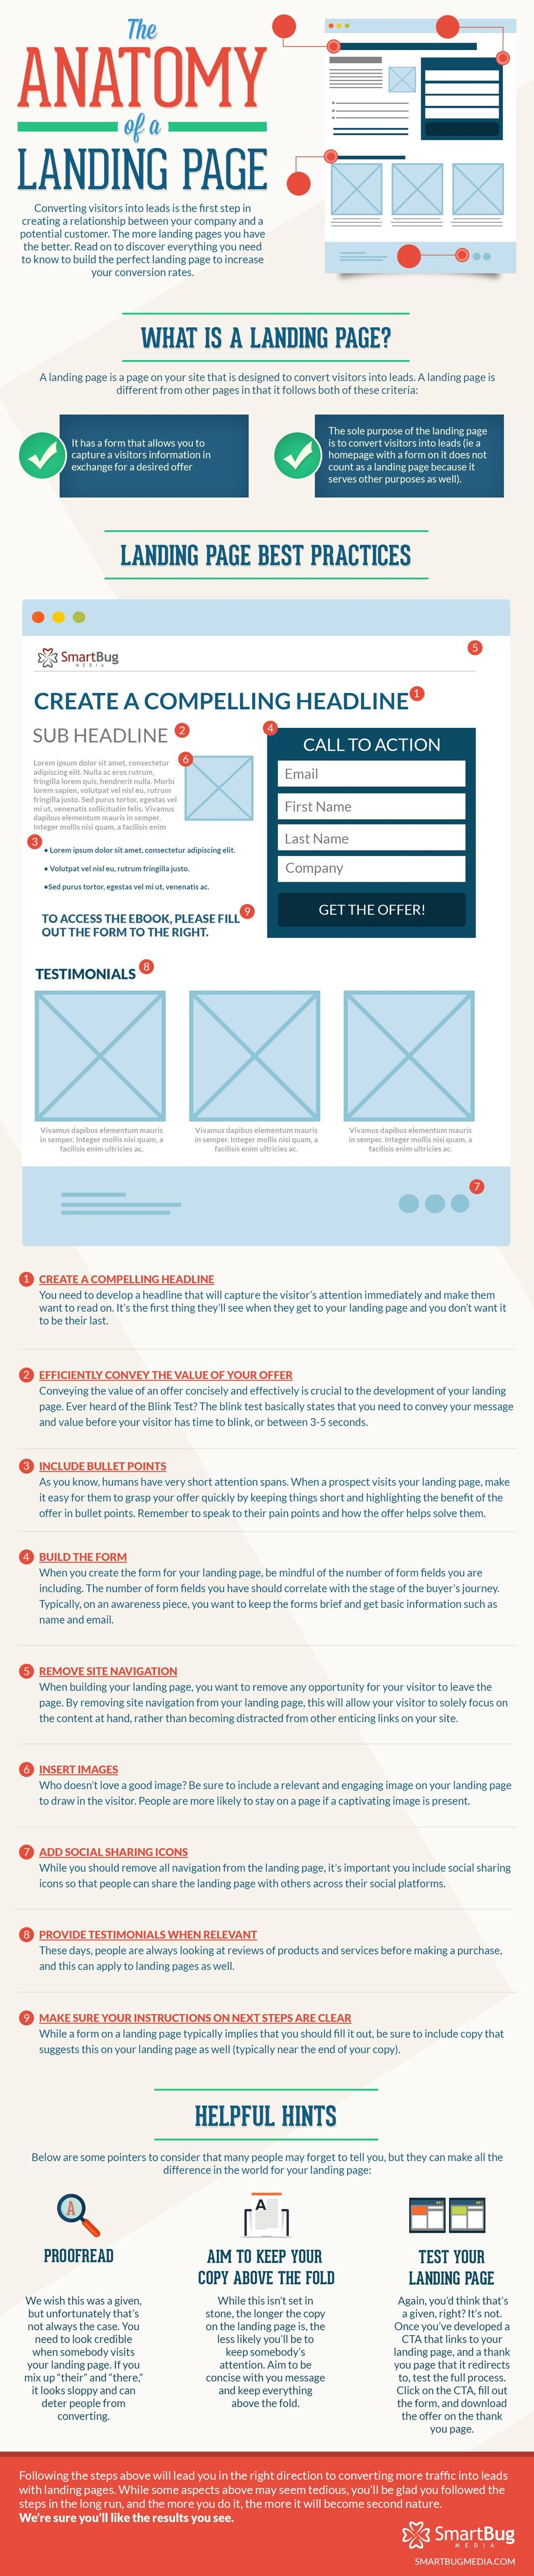 The Anatomy Of A Landing Page Infographic Connecticut Seo